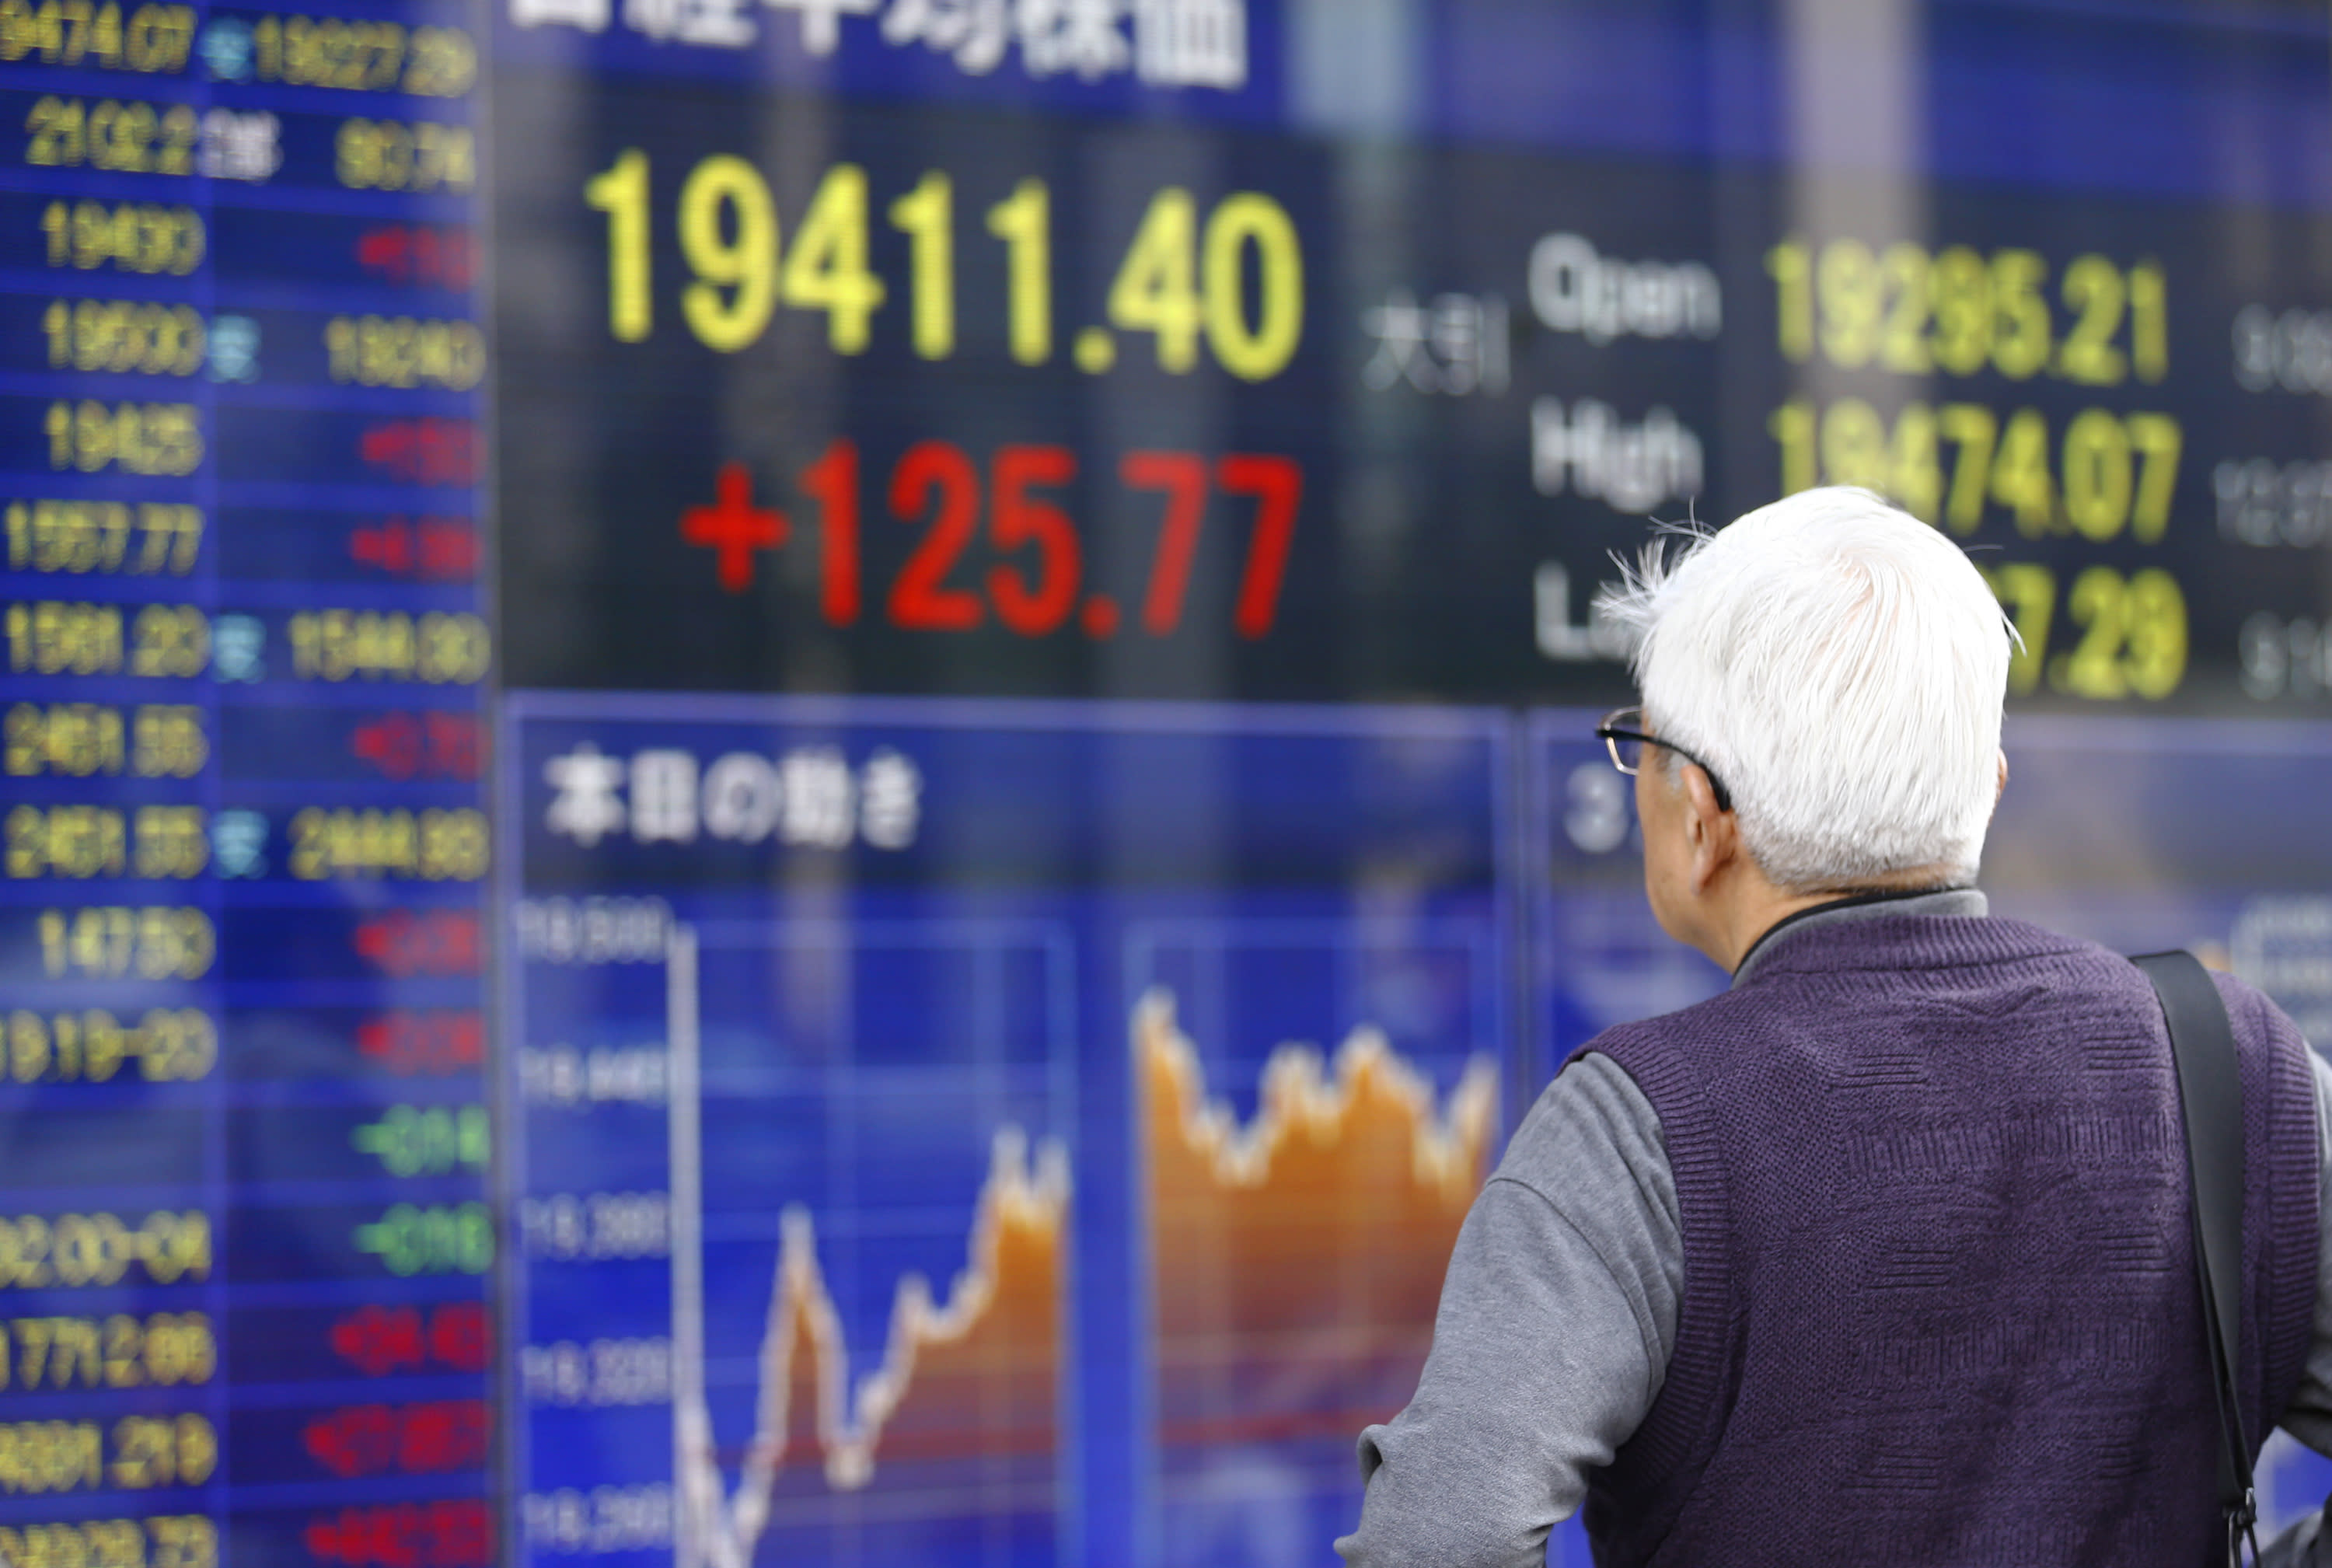 Asian stocks mostly higher after Yellen rate rise remarks